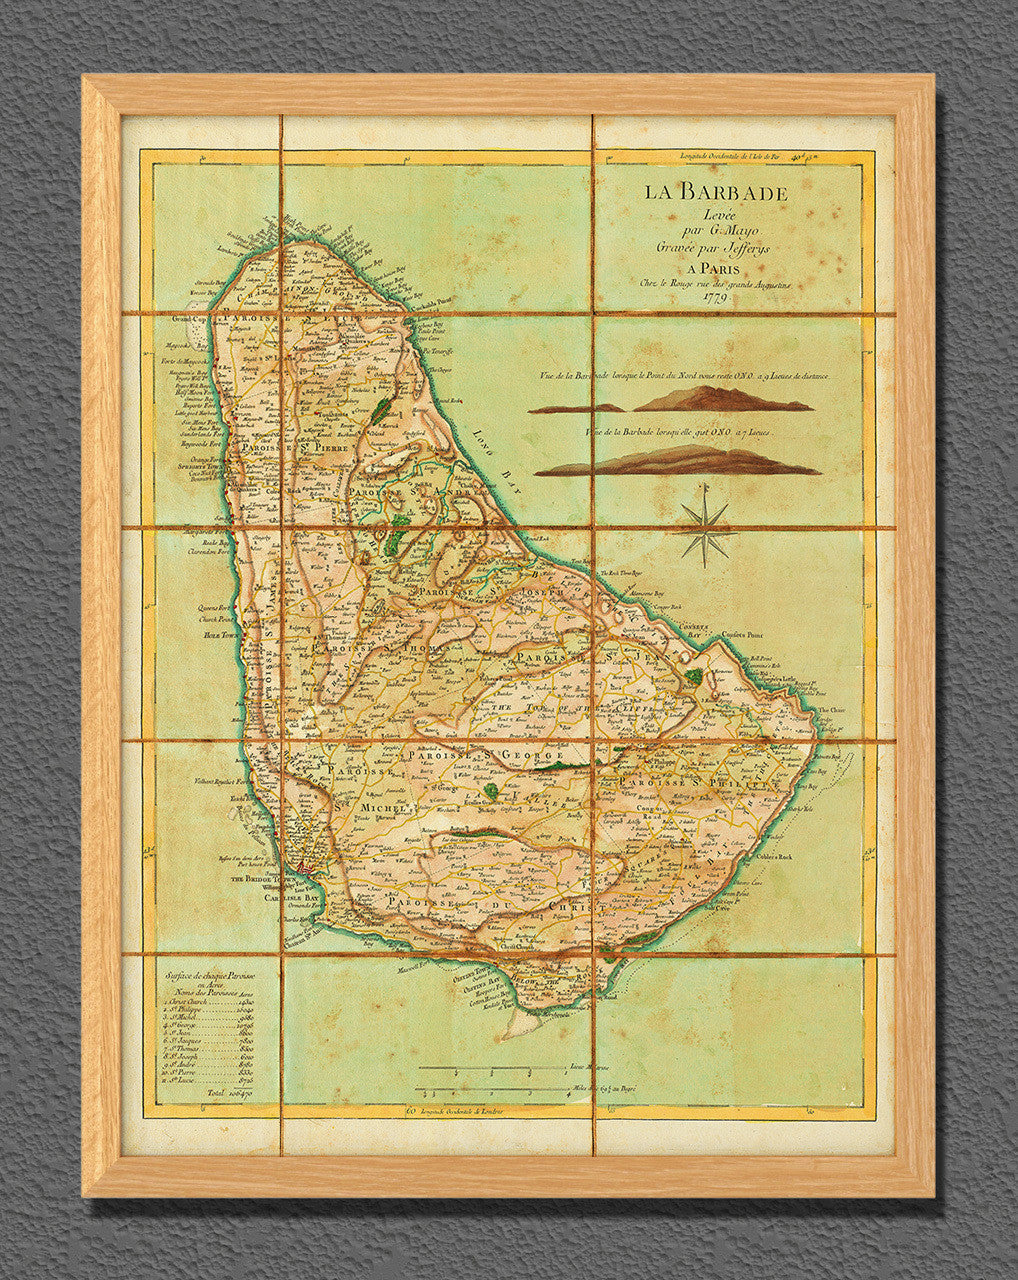 Map of Barbados 1779 La Barbade Mayo Jefferys Le Rouge